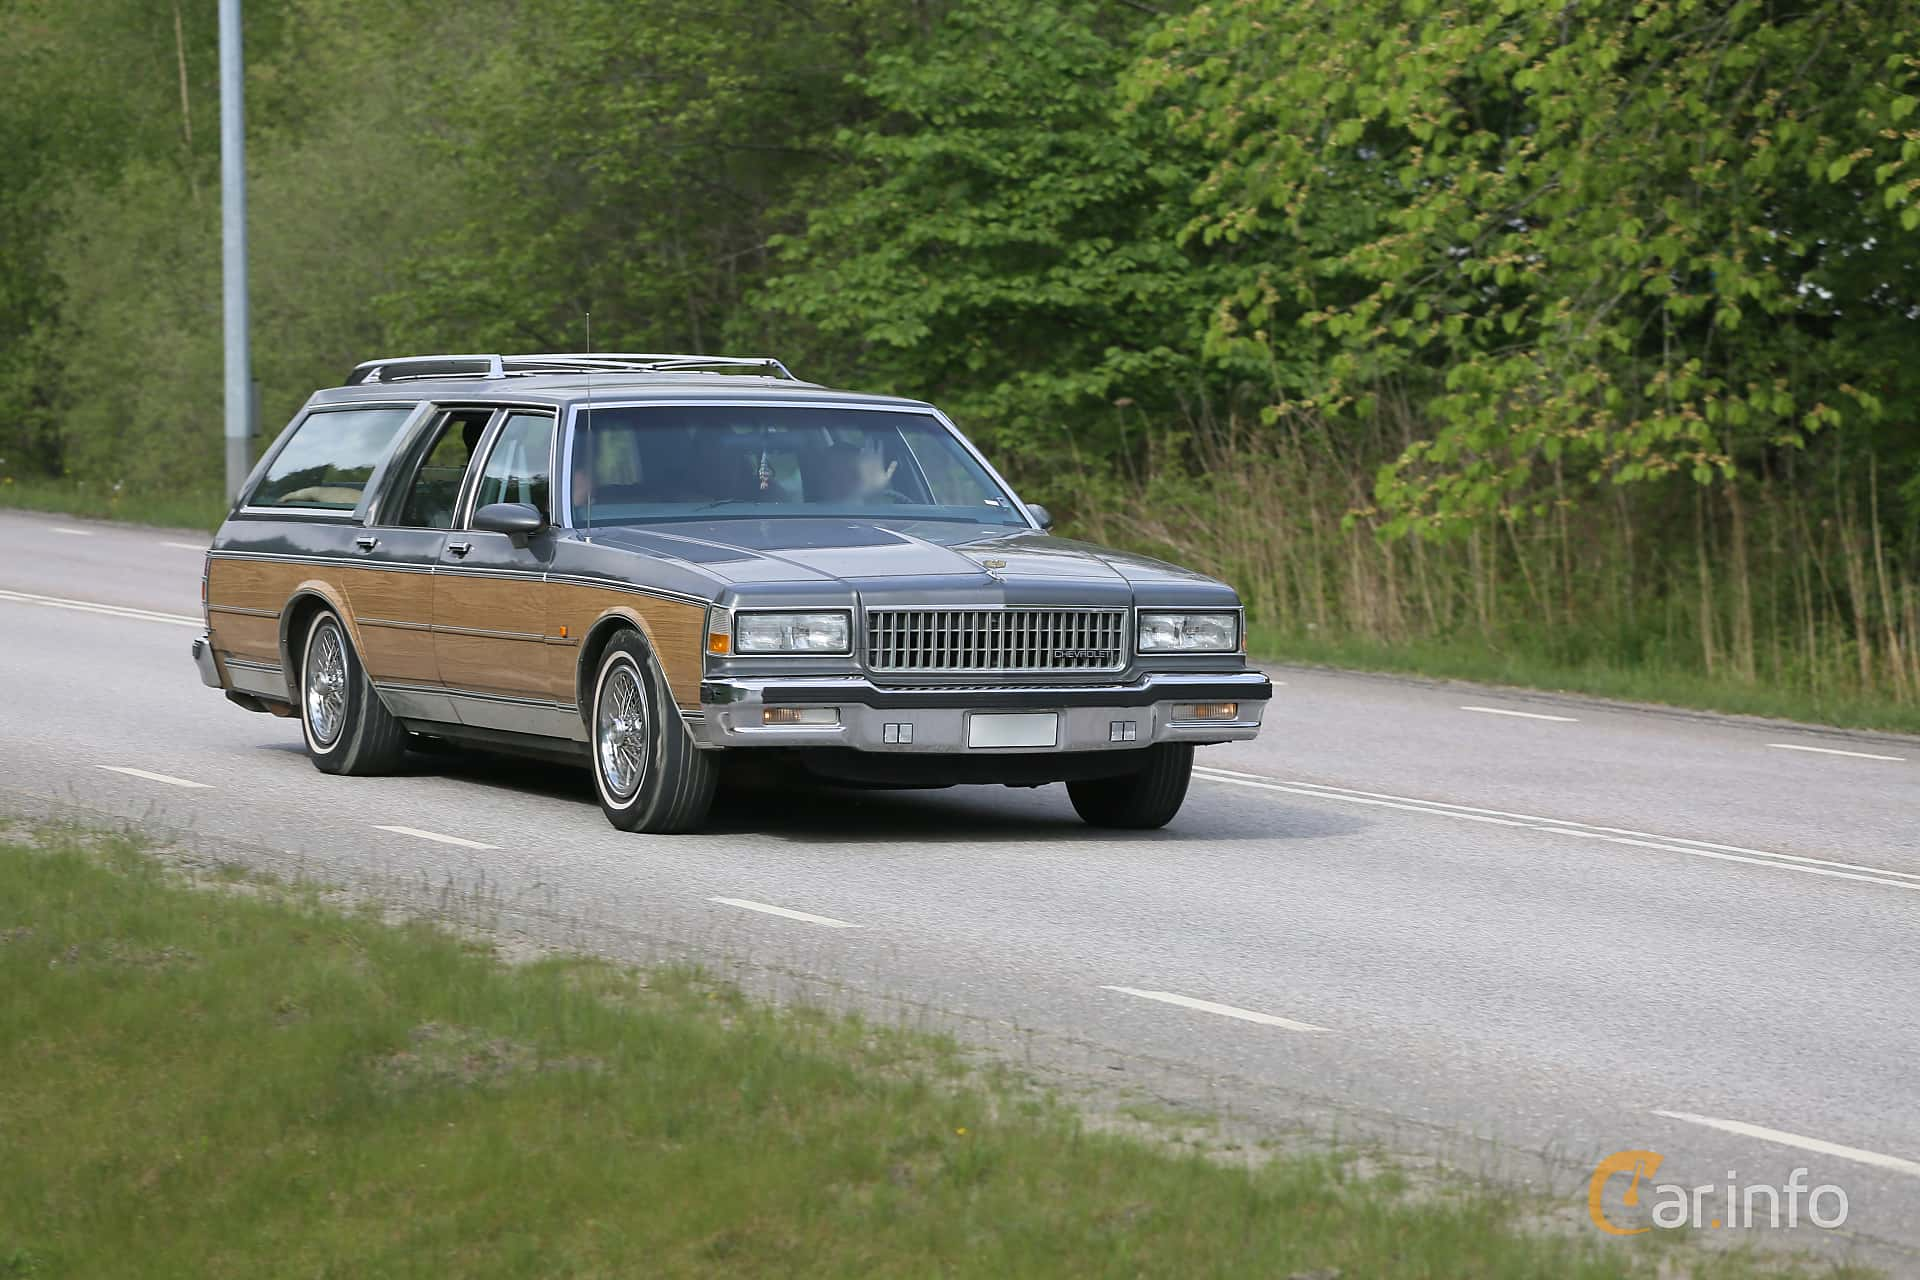 1 images of Chevrolet Caprice Classic Station Wagon 5 0 V8